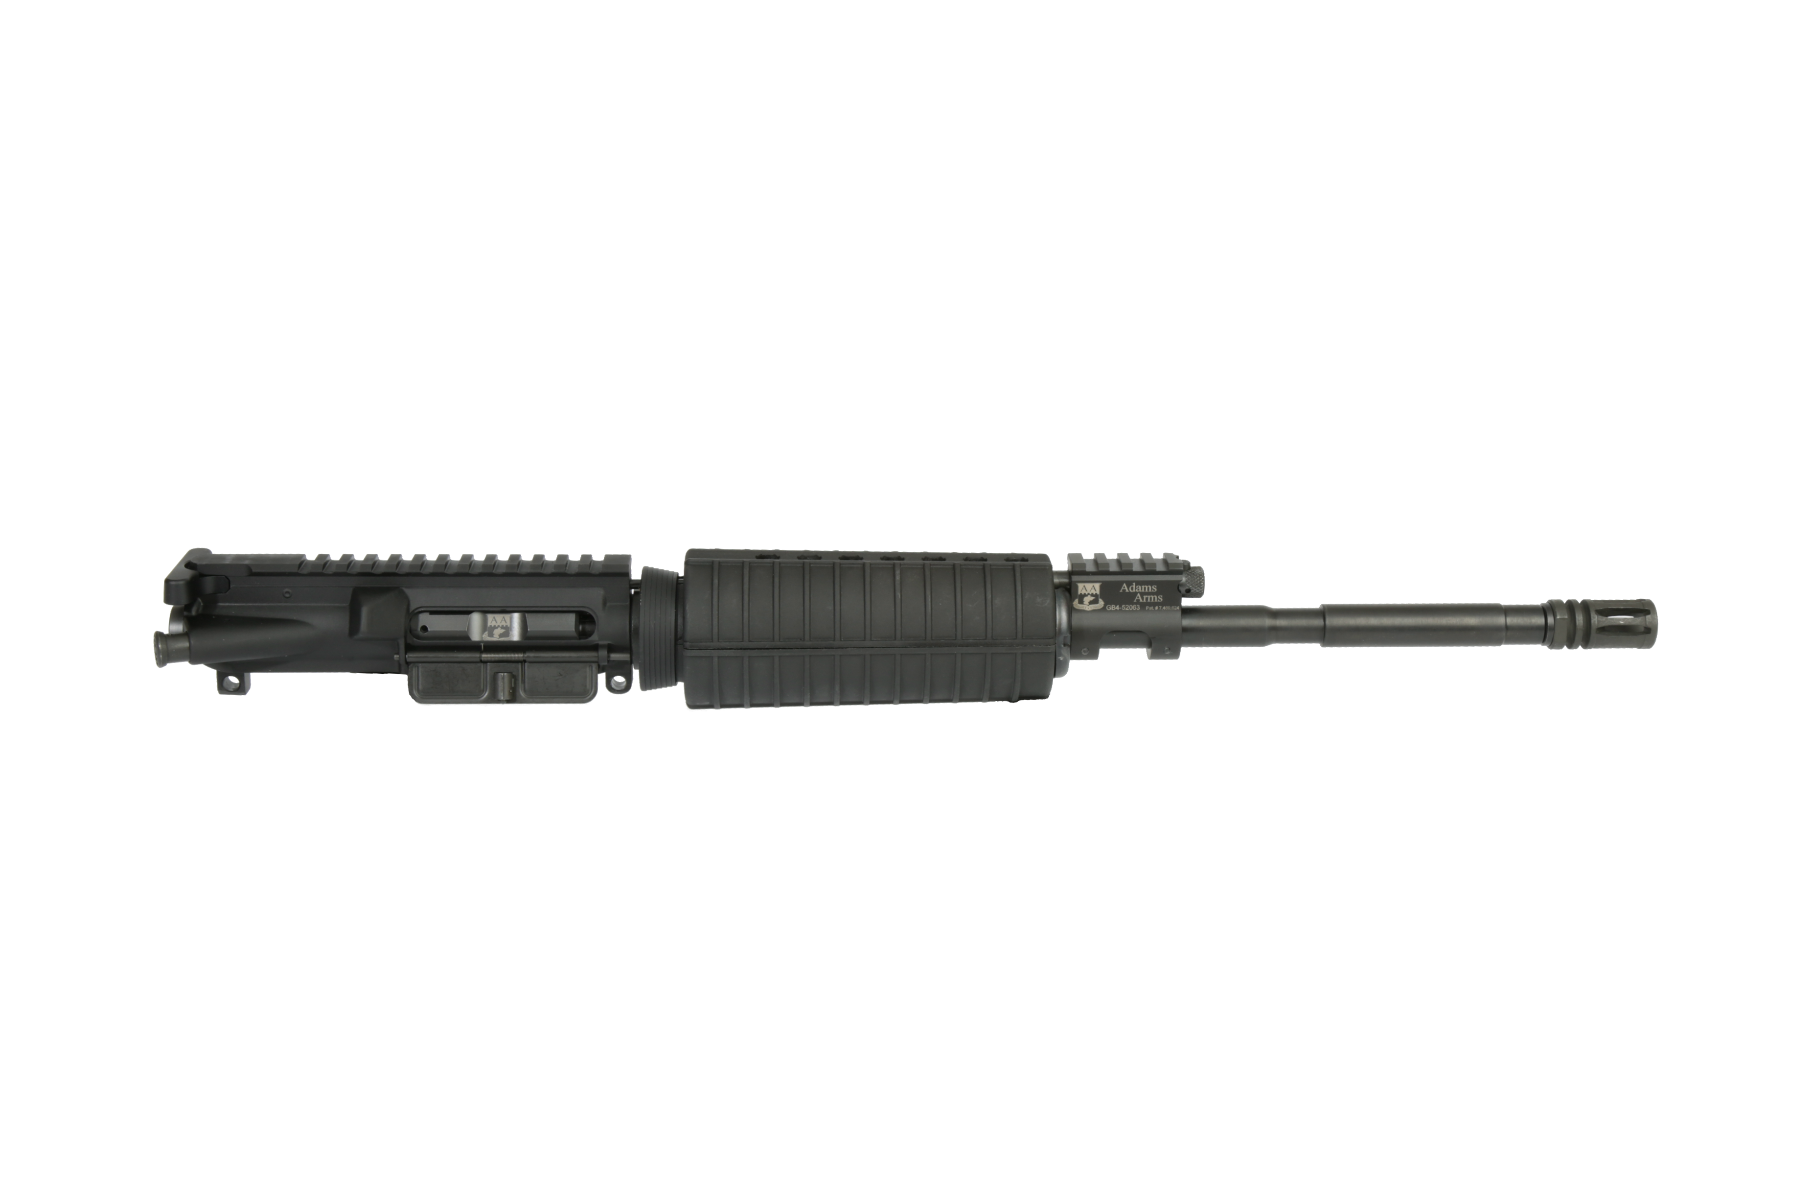 Adams Arms PZ 5.56 NATO Complete Upper